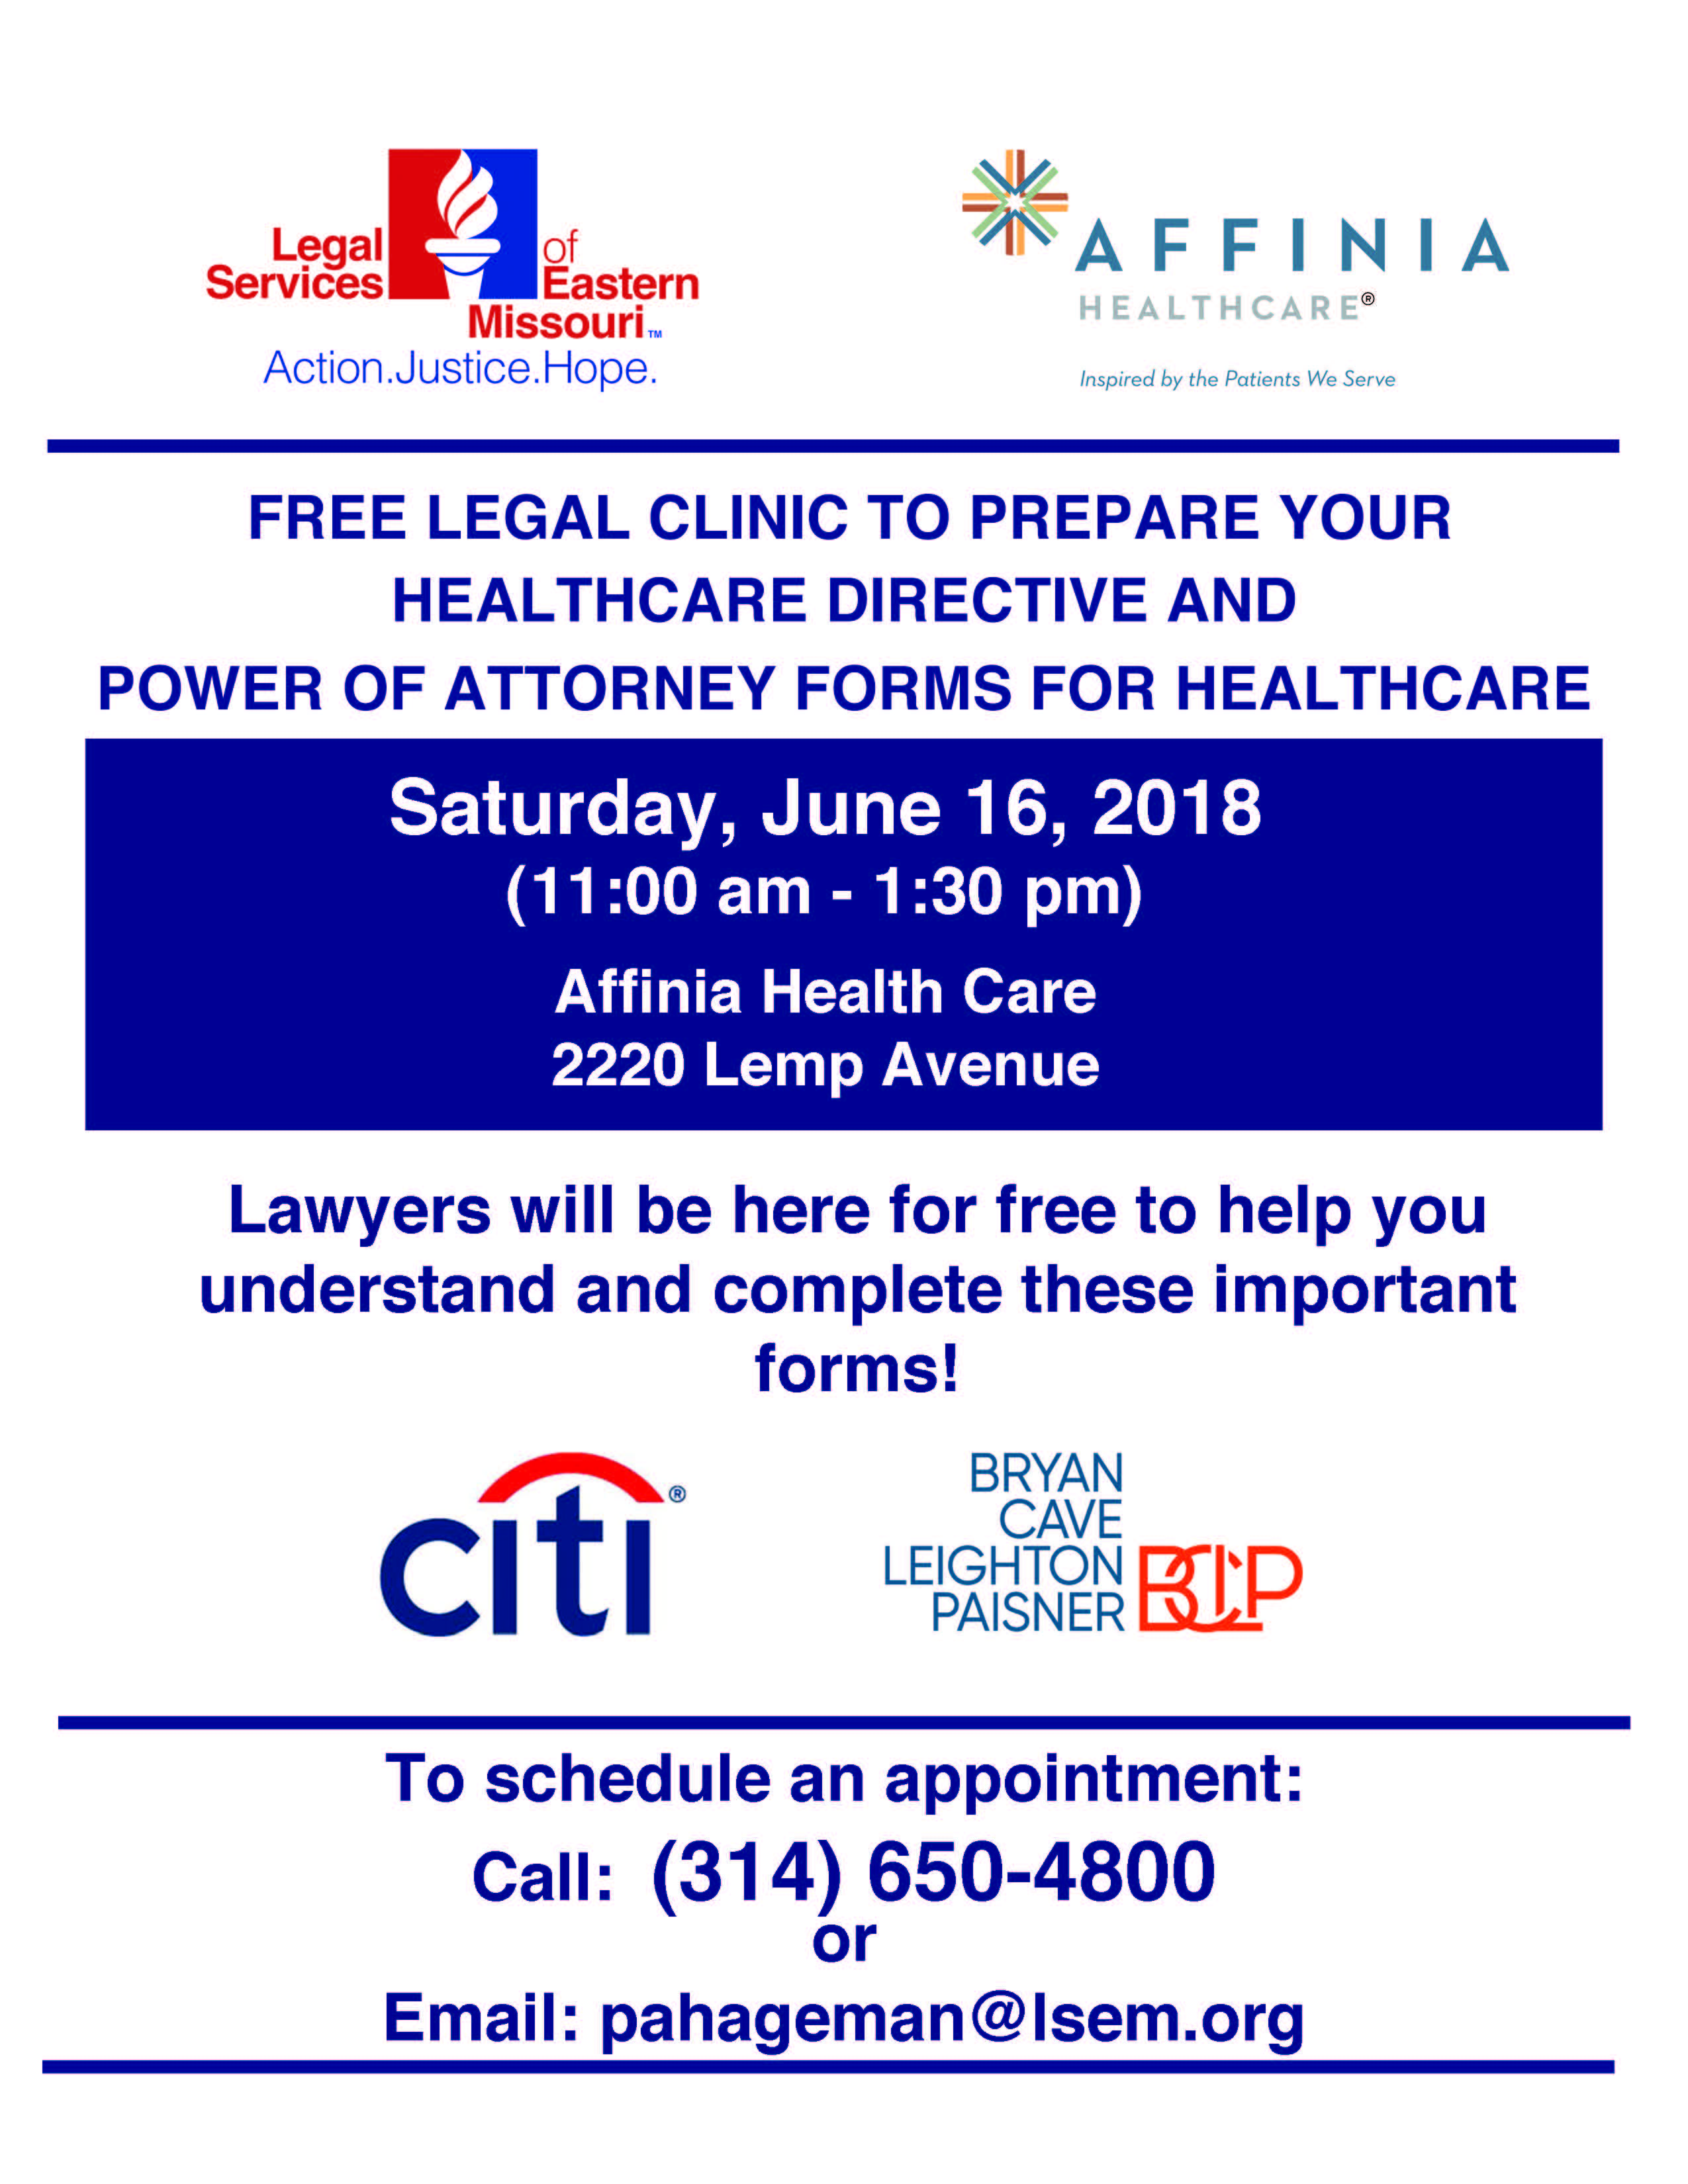 Free Legal Clinic For Healthcare Directives Legal Services Of